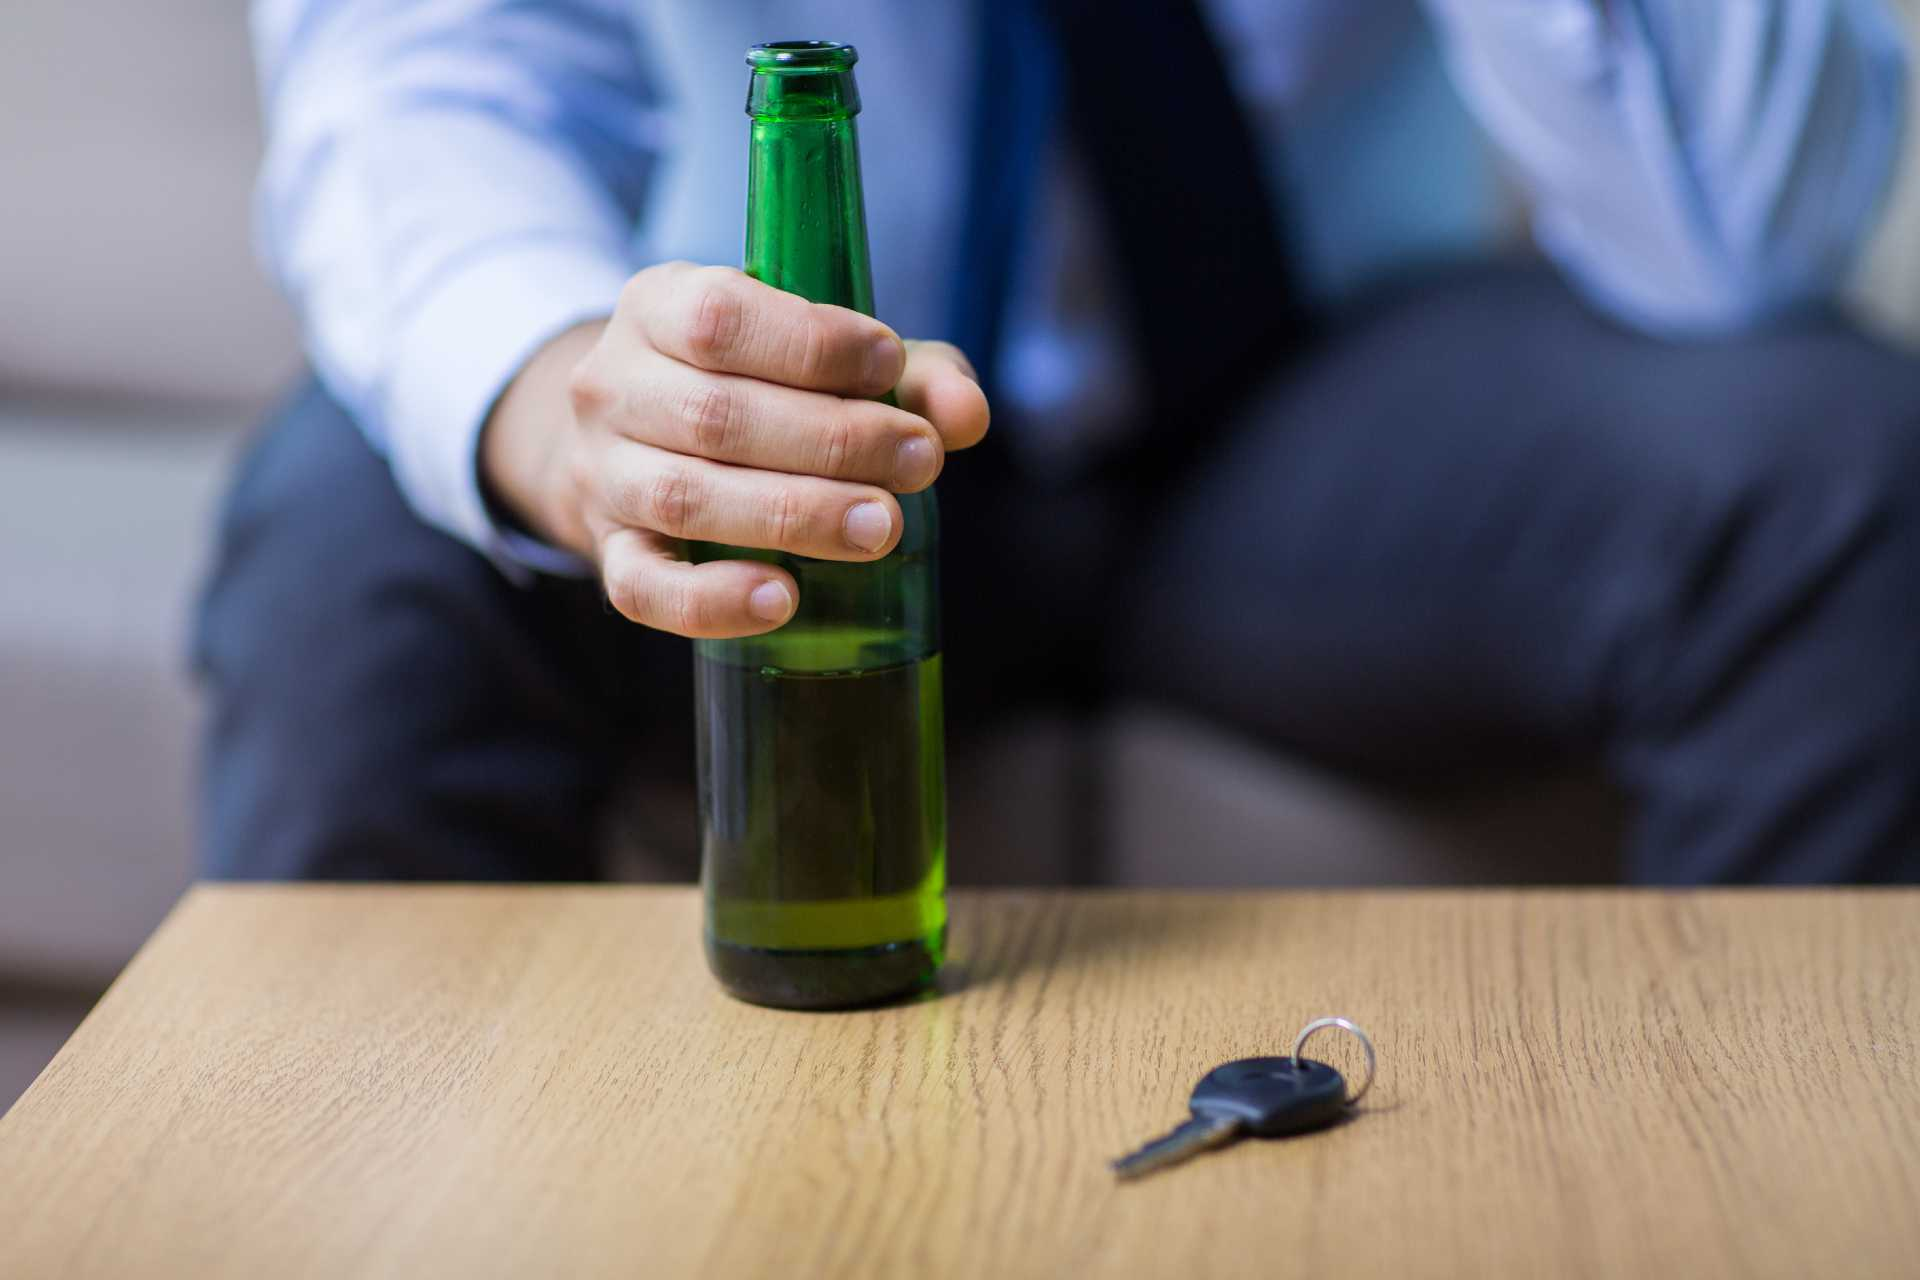 Man drinking before driving